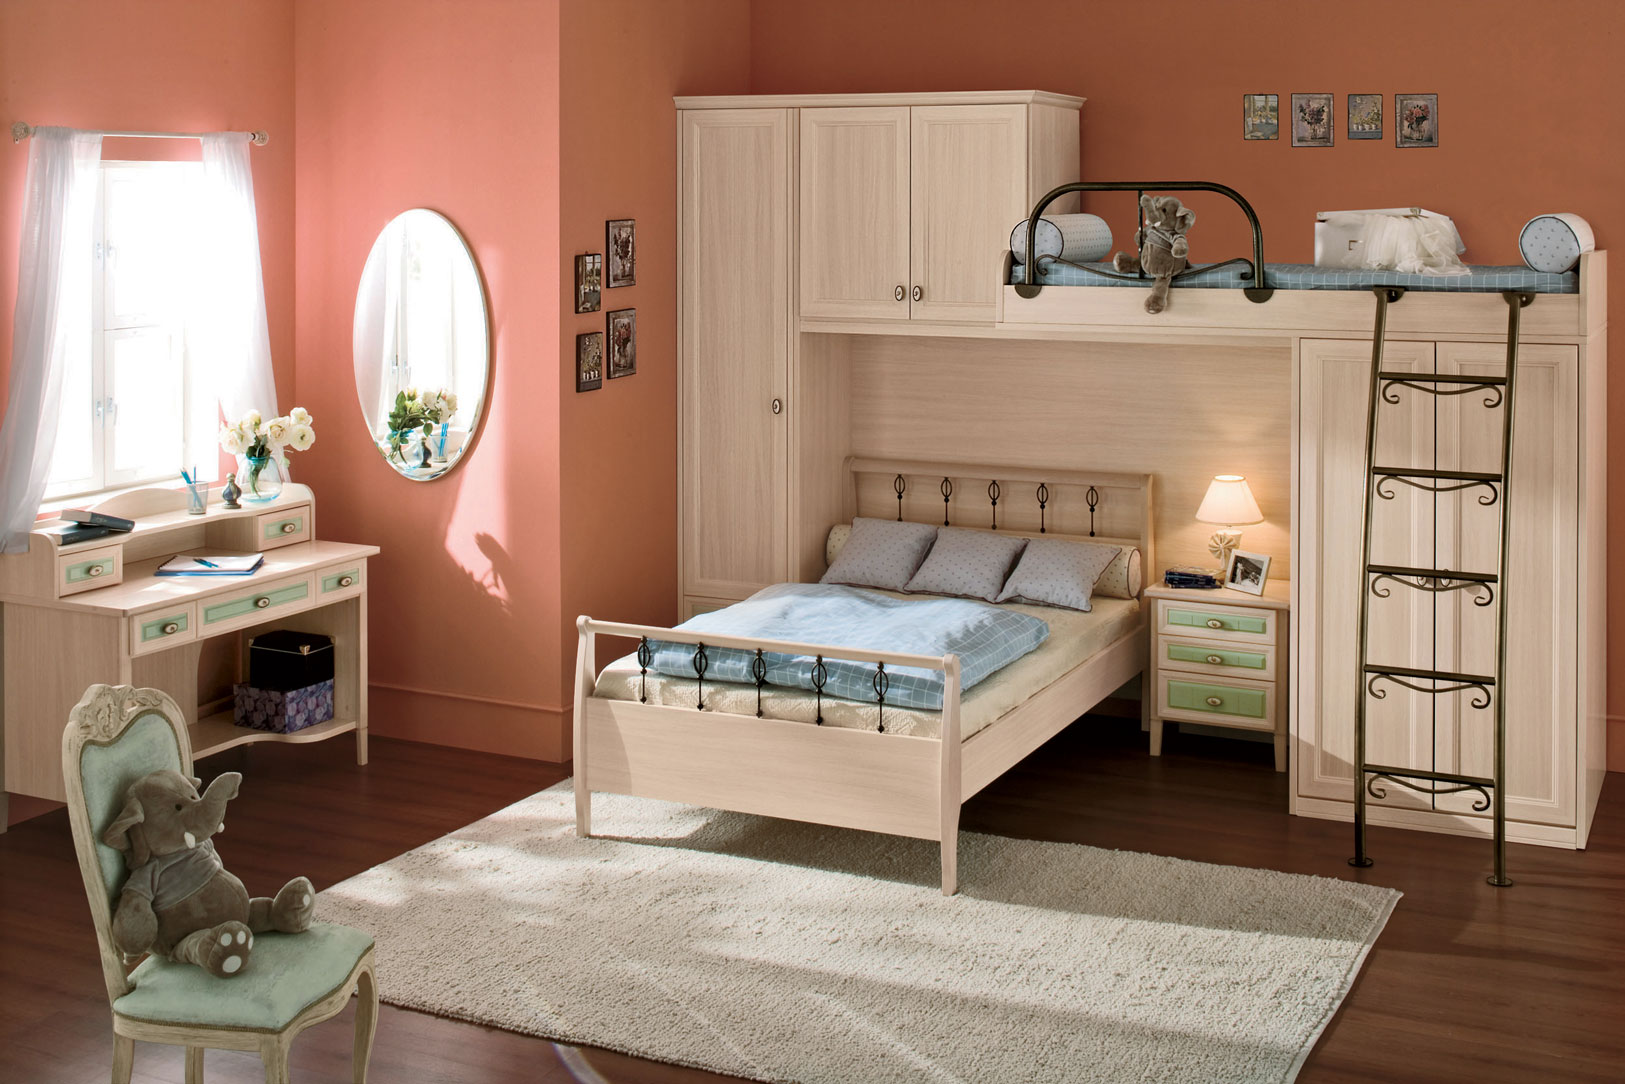 Kid 39 s rooms from russian maker akossta - Kids bedroom ...